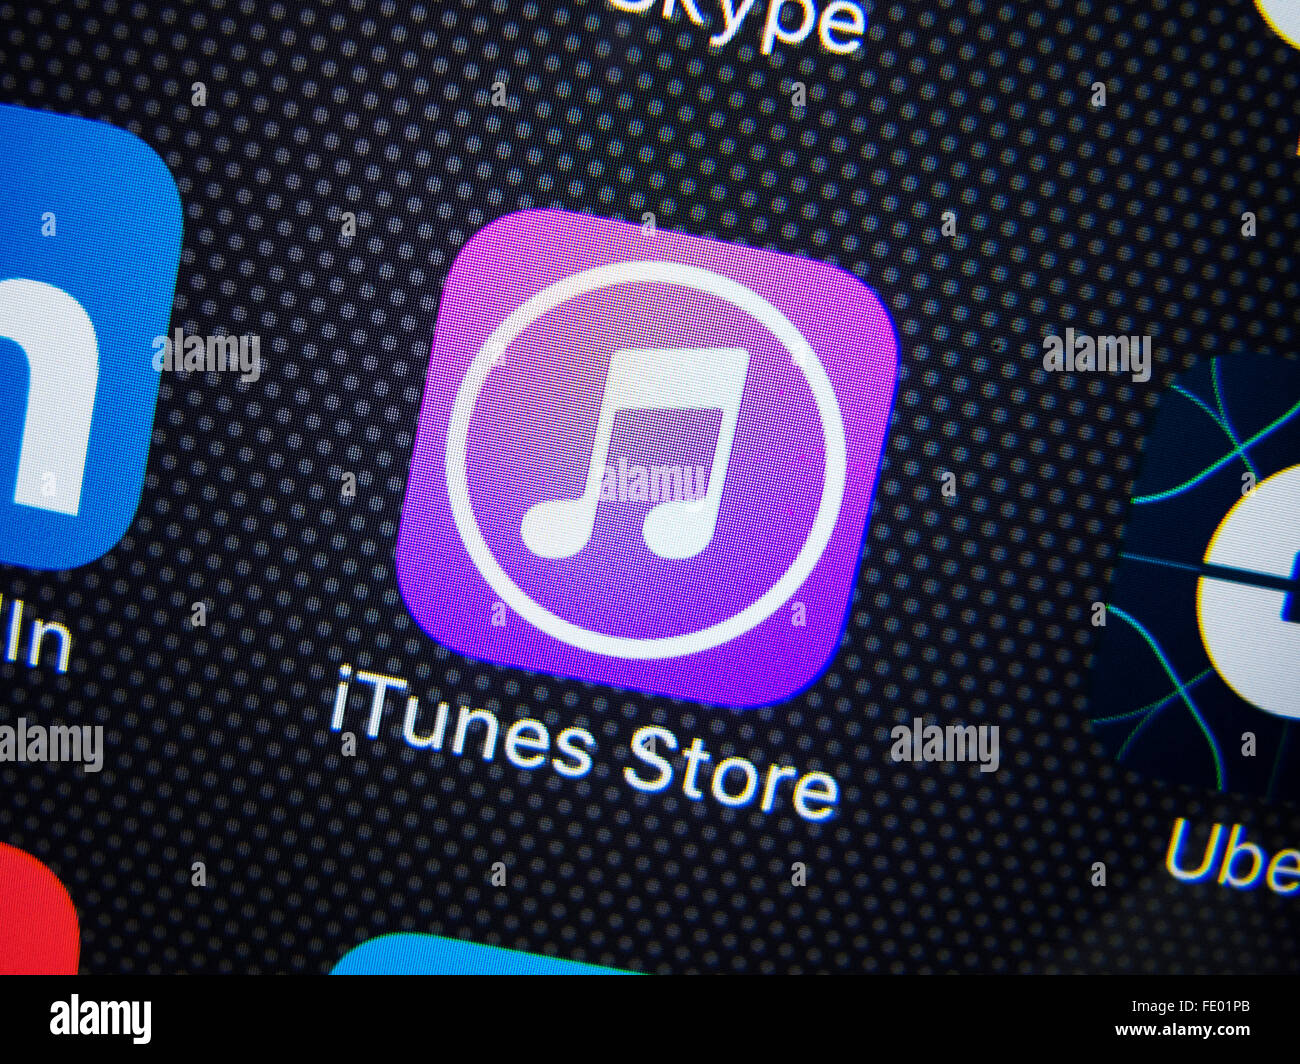 Detail of iTunes store app icon on iPhone - Stock Image